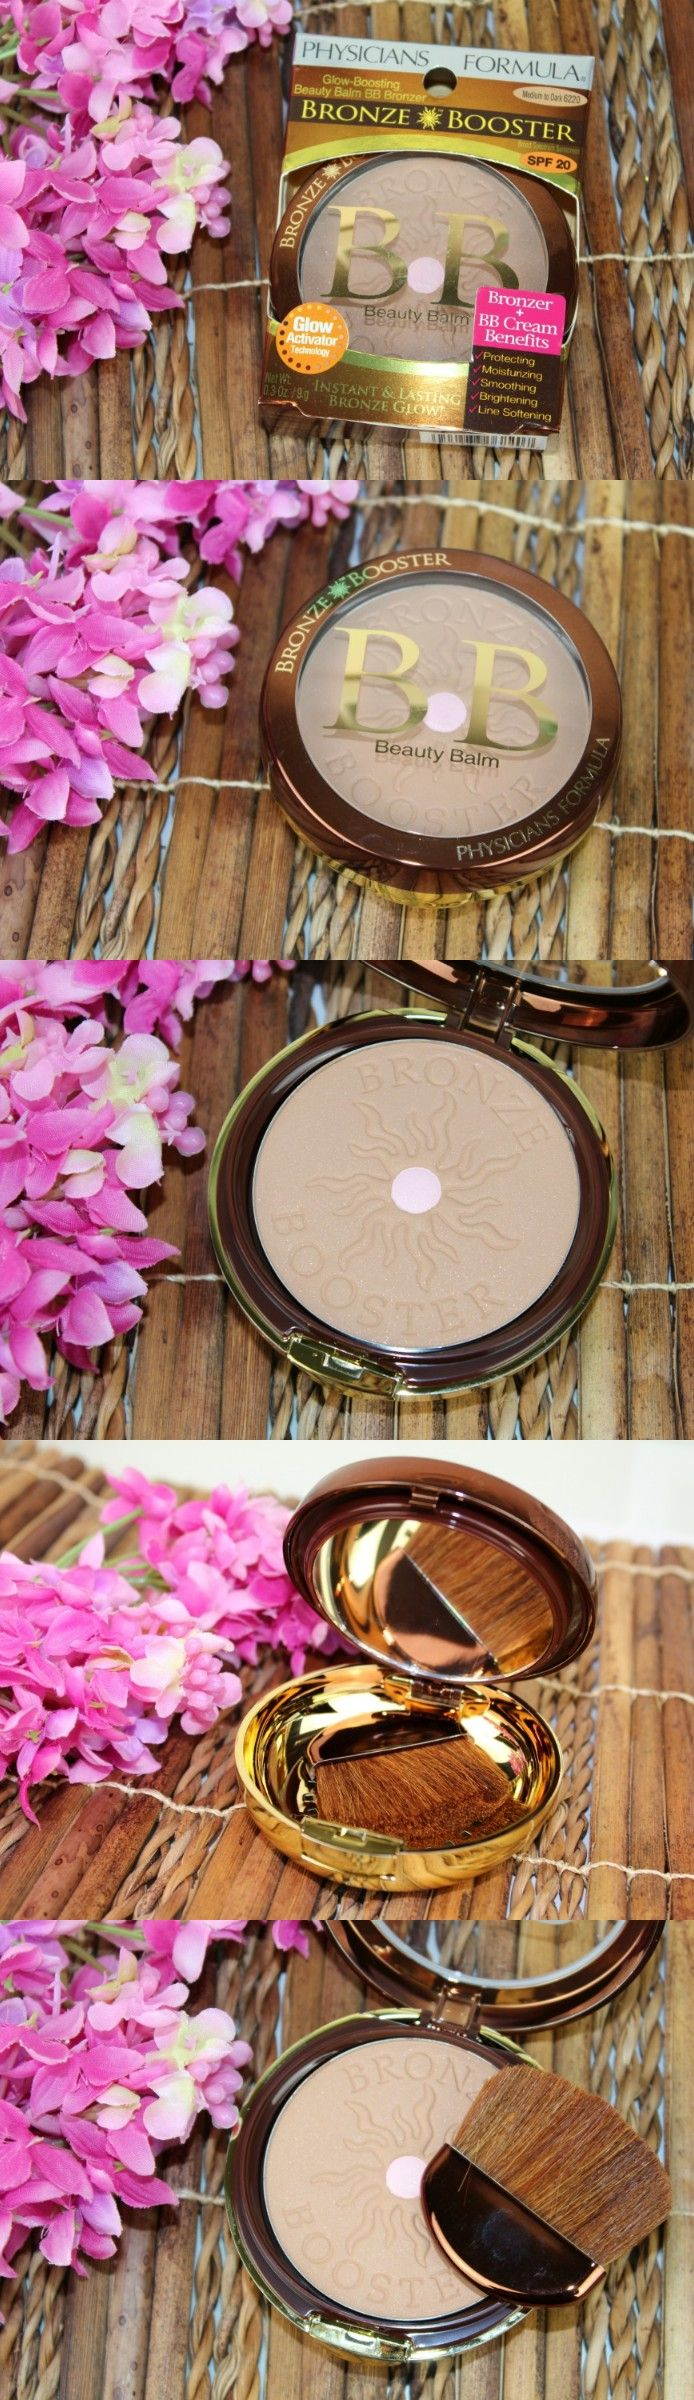 Physicians Formula Bronze Booster Review and Photos